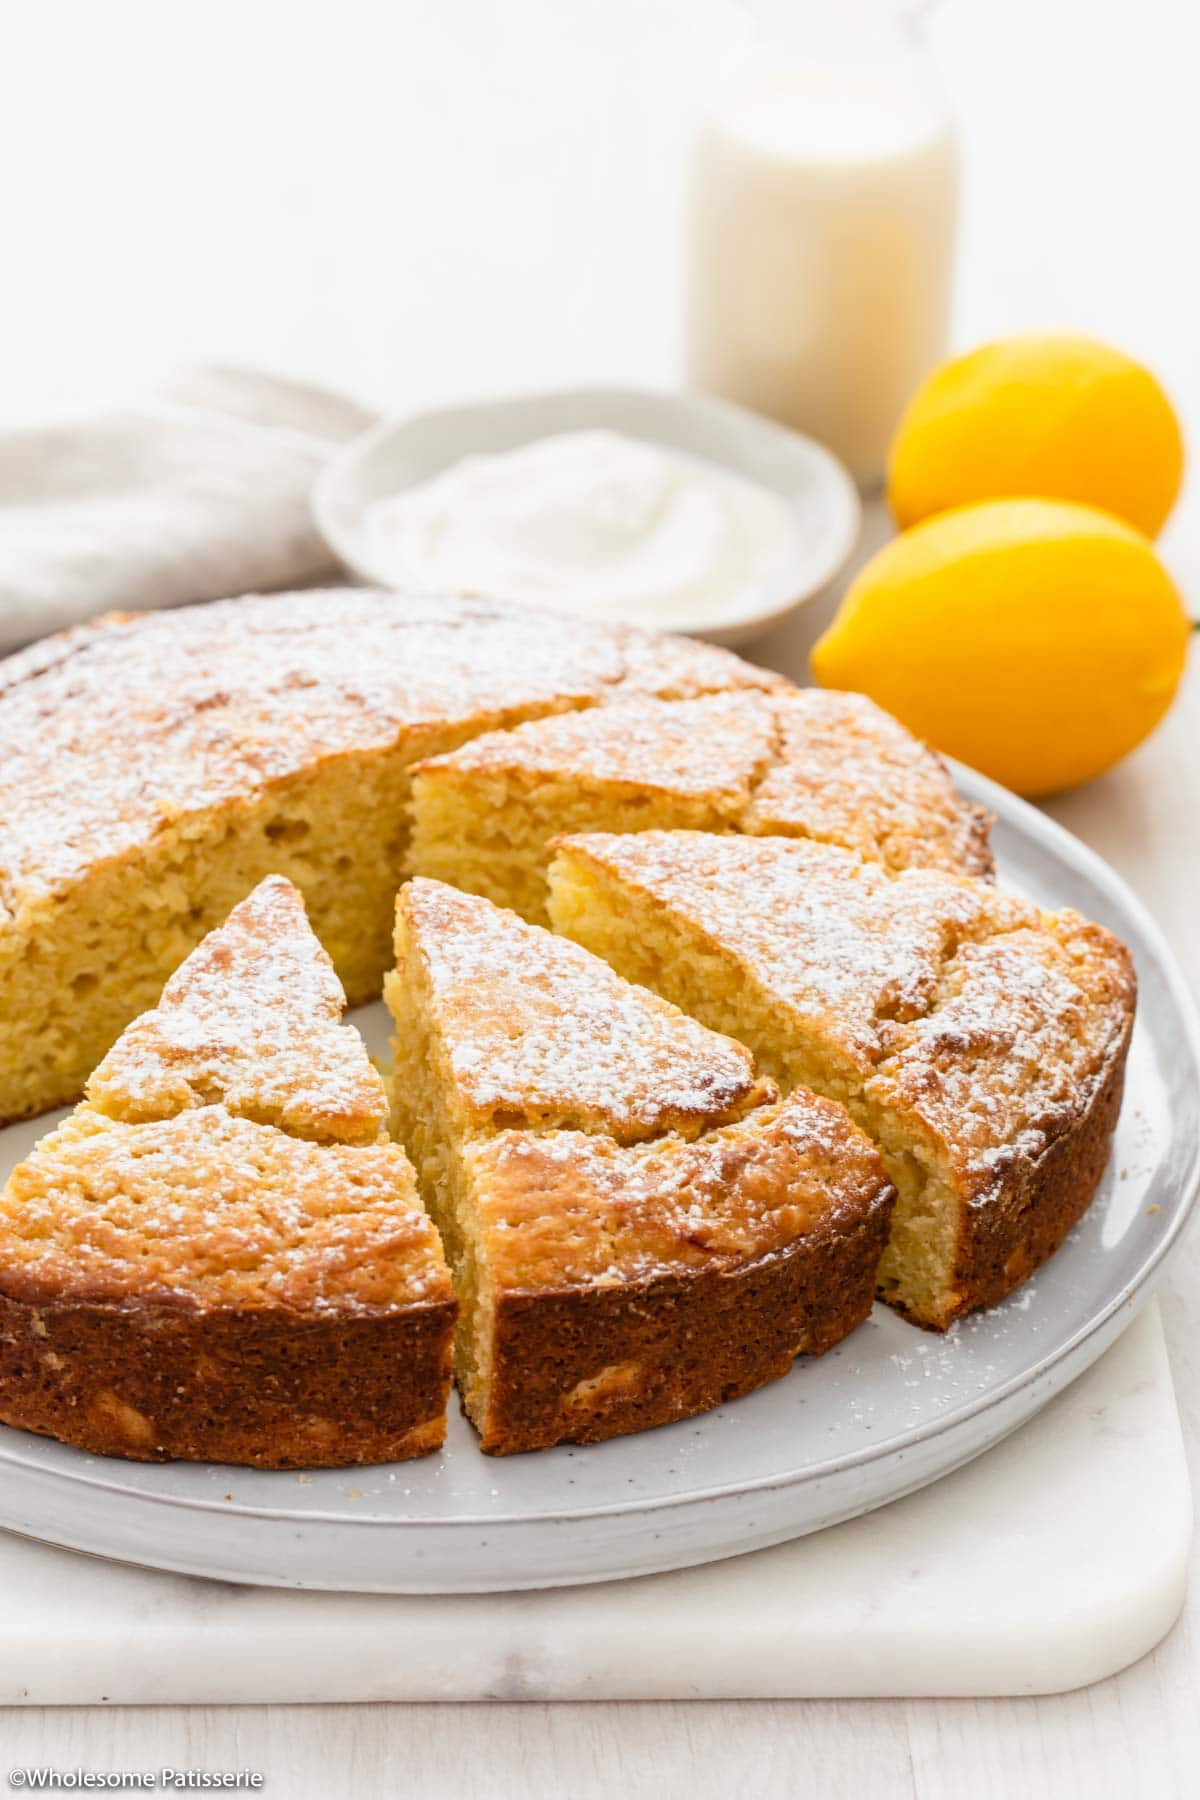 Lemon yoghurt cake dusted with icing sugar and sliced